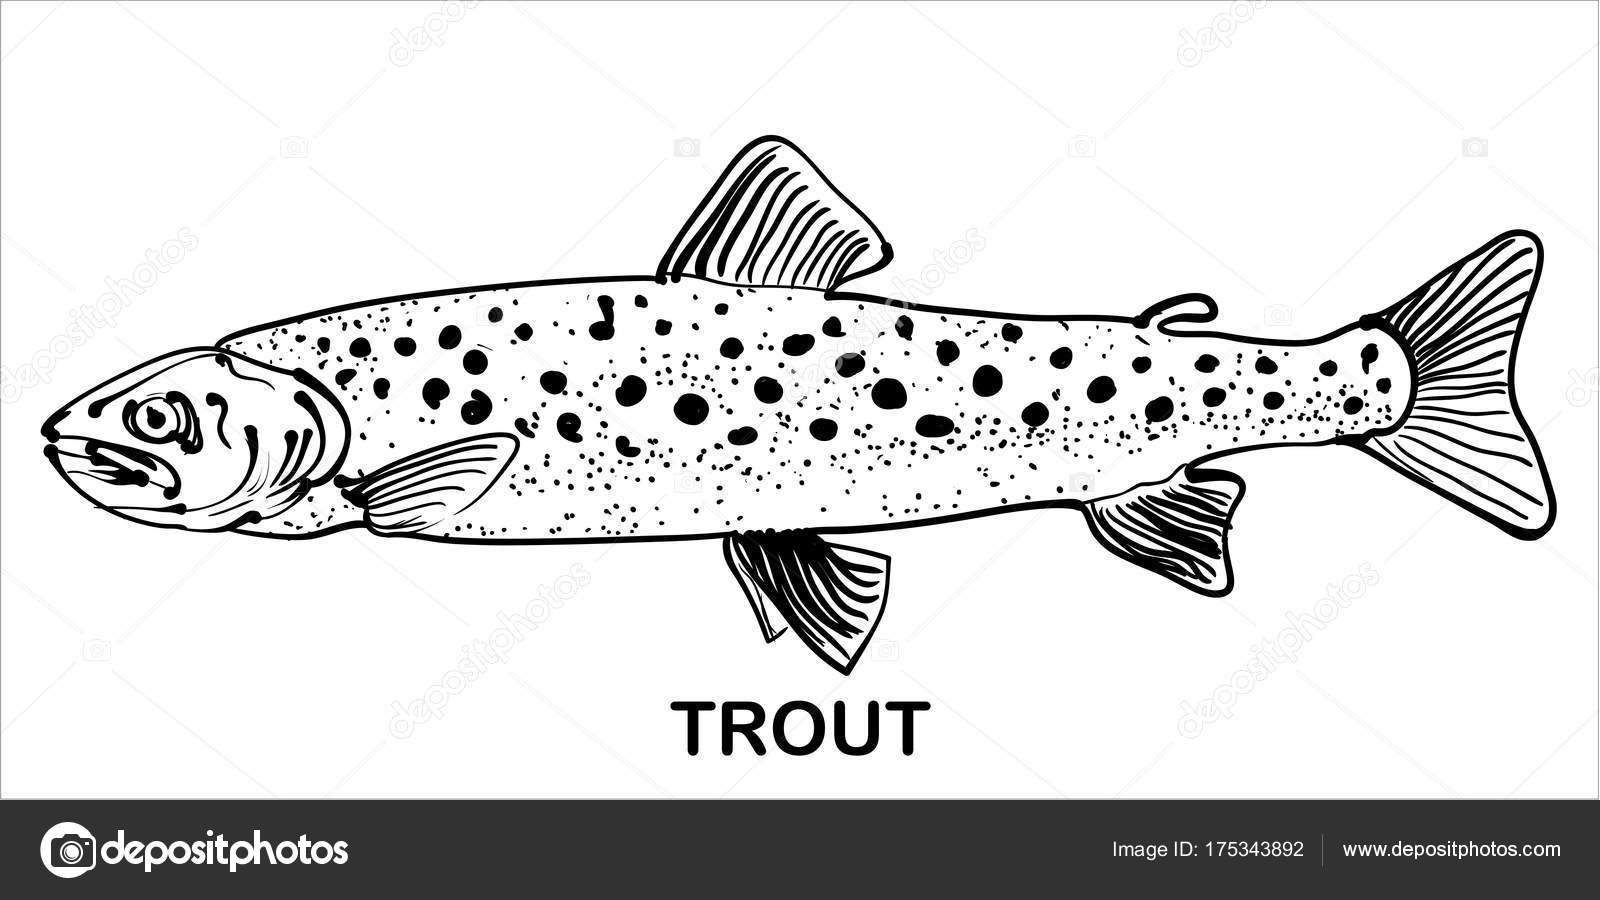 Monochrome Hand Drawn Image Trout — Stock Vector © nikvector20@gmail ...